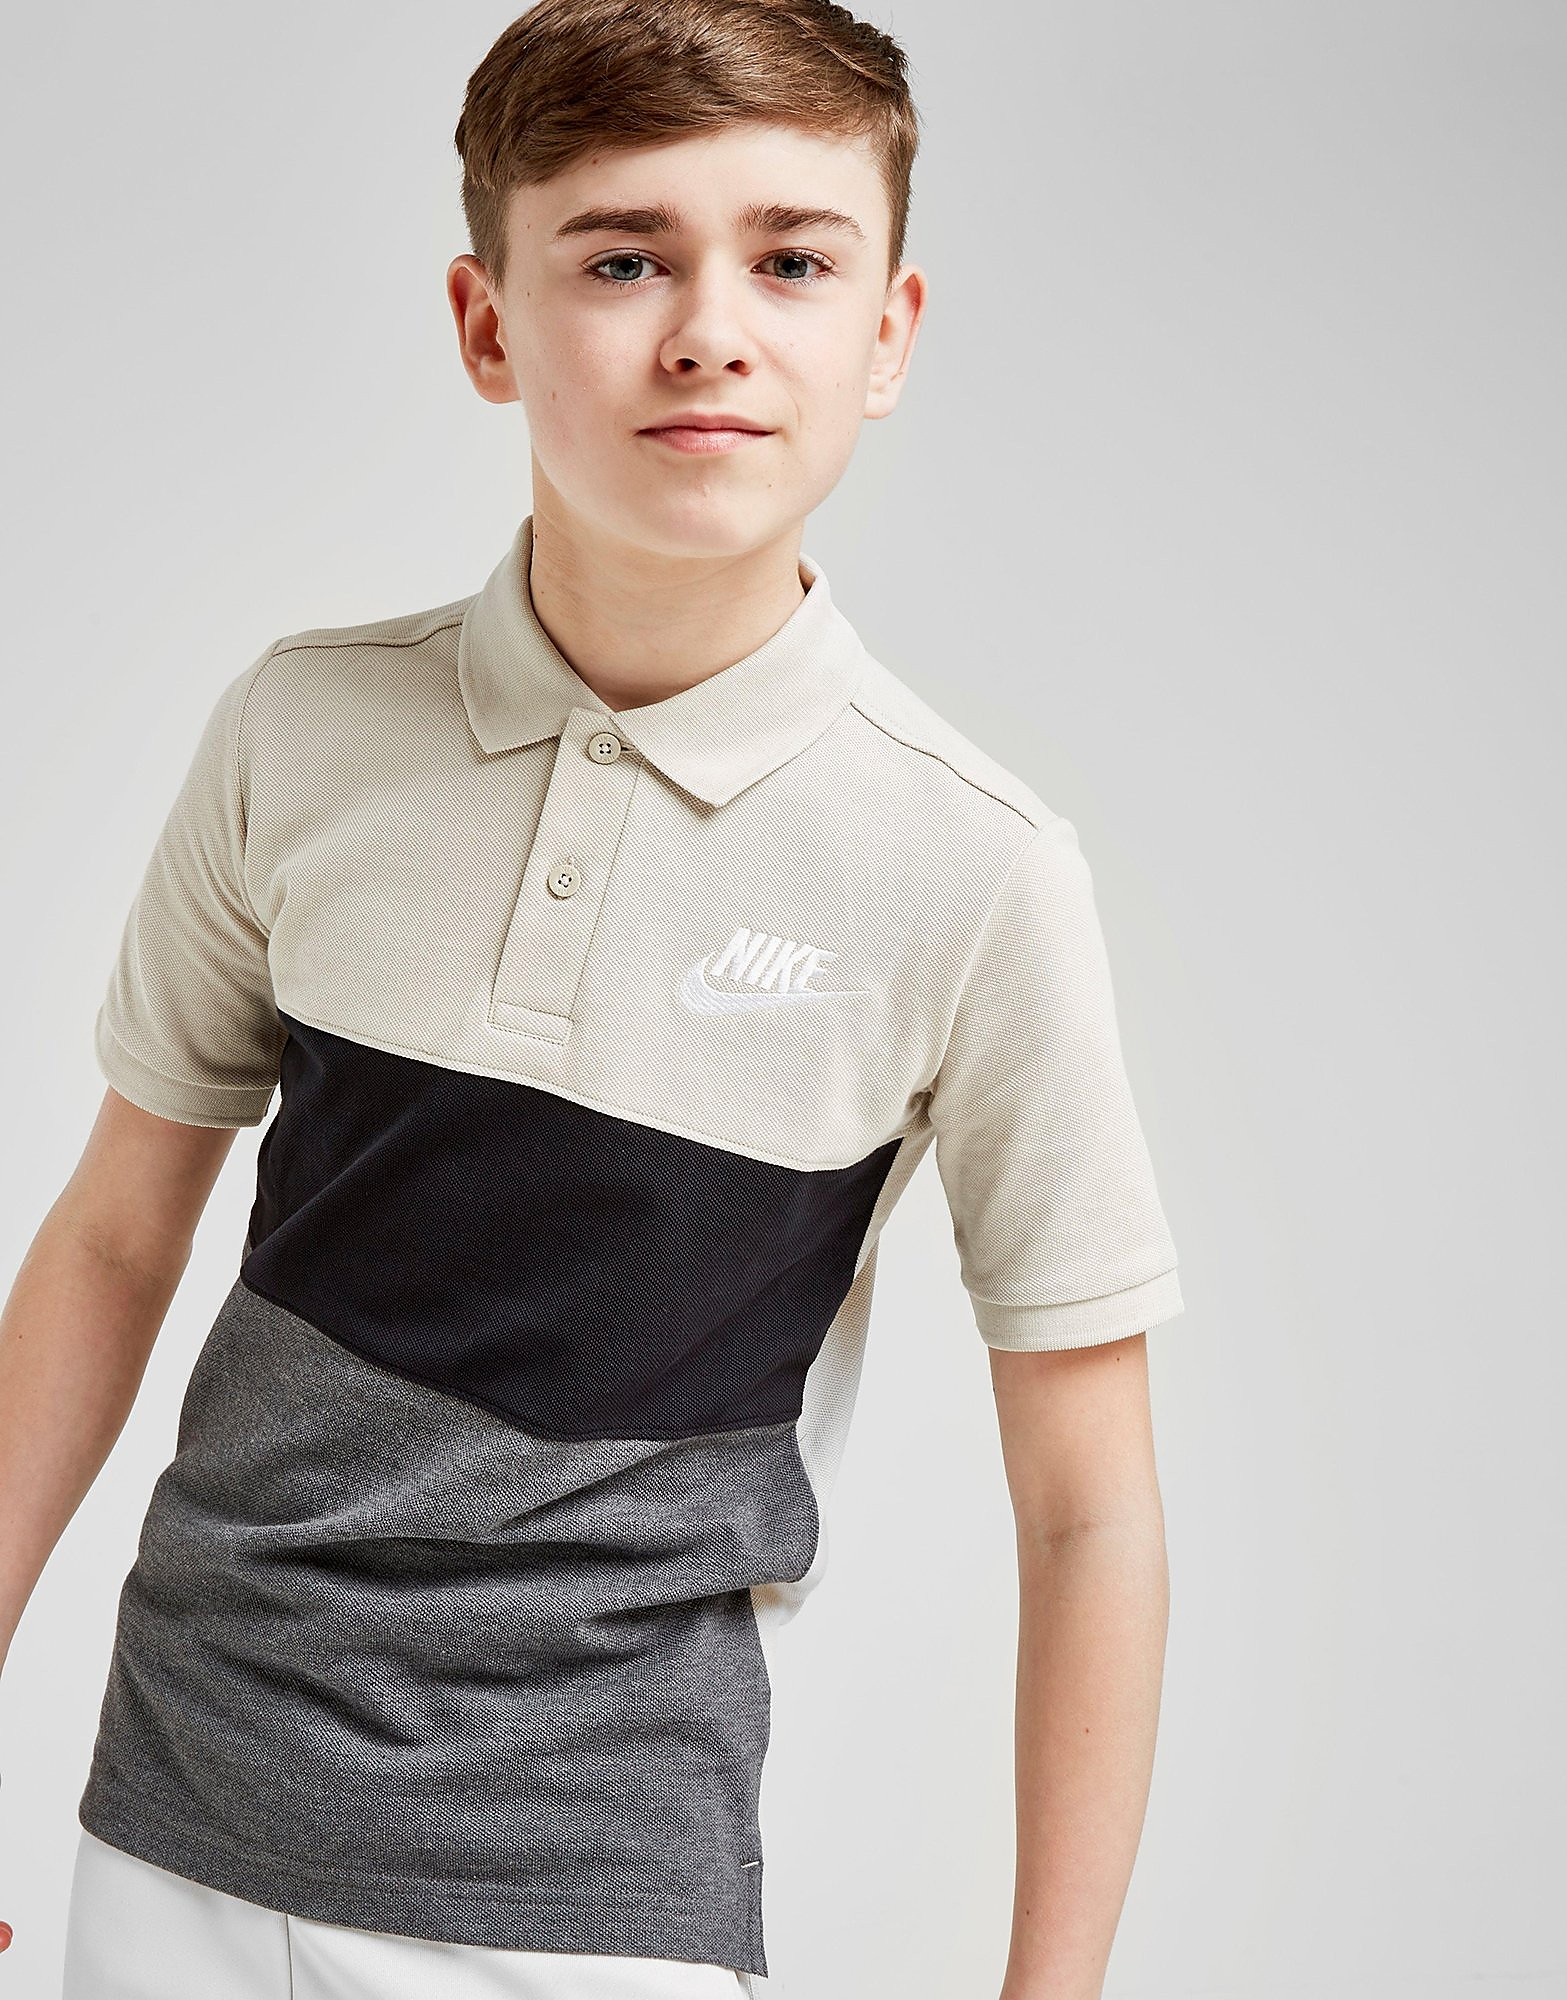 Nike Colour Block Polo Shirt Junior - Crème - Kind